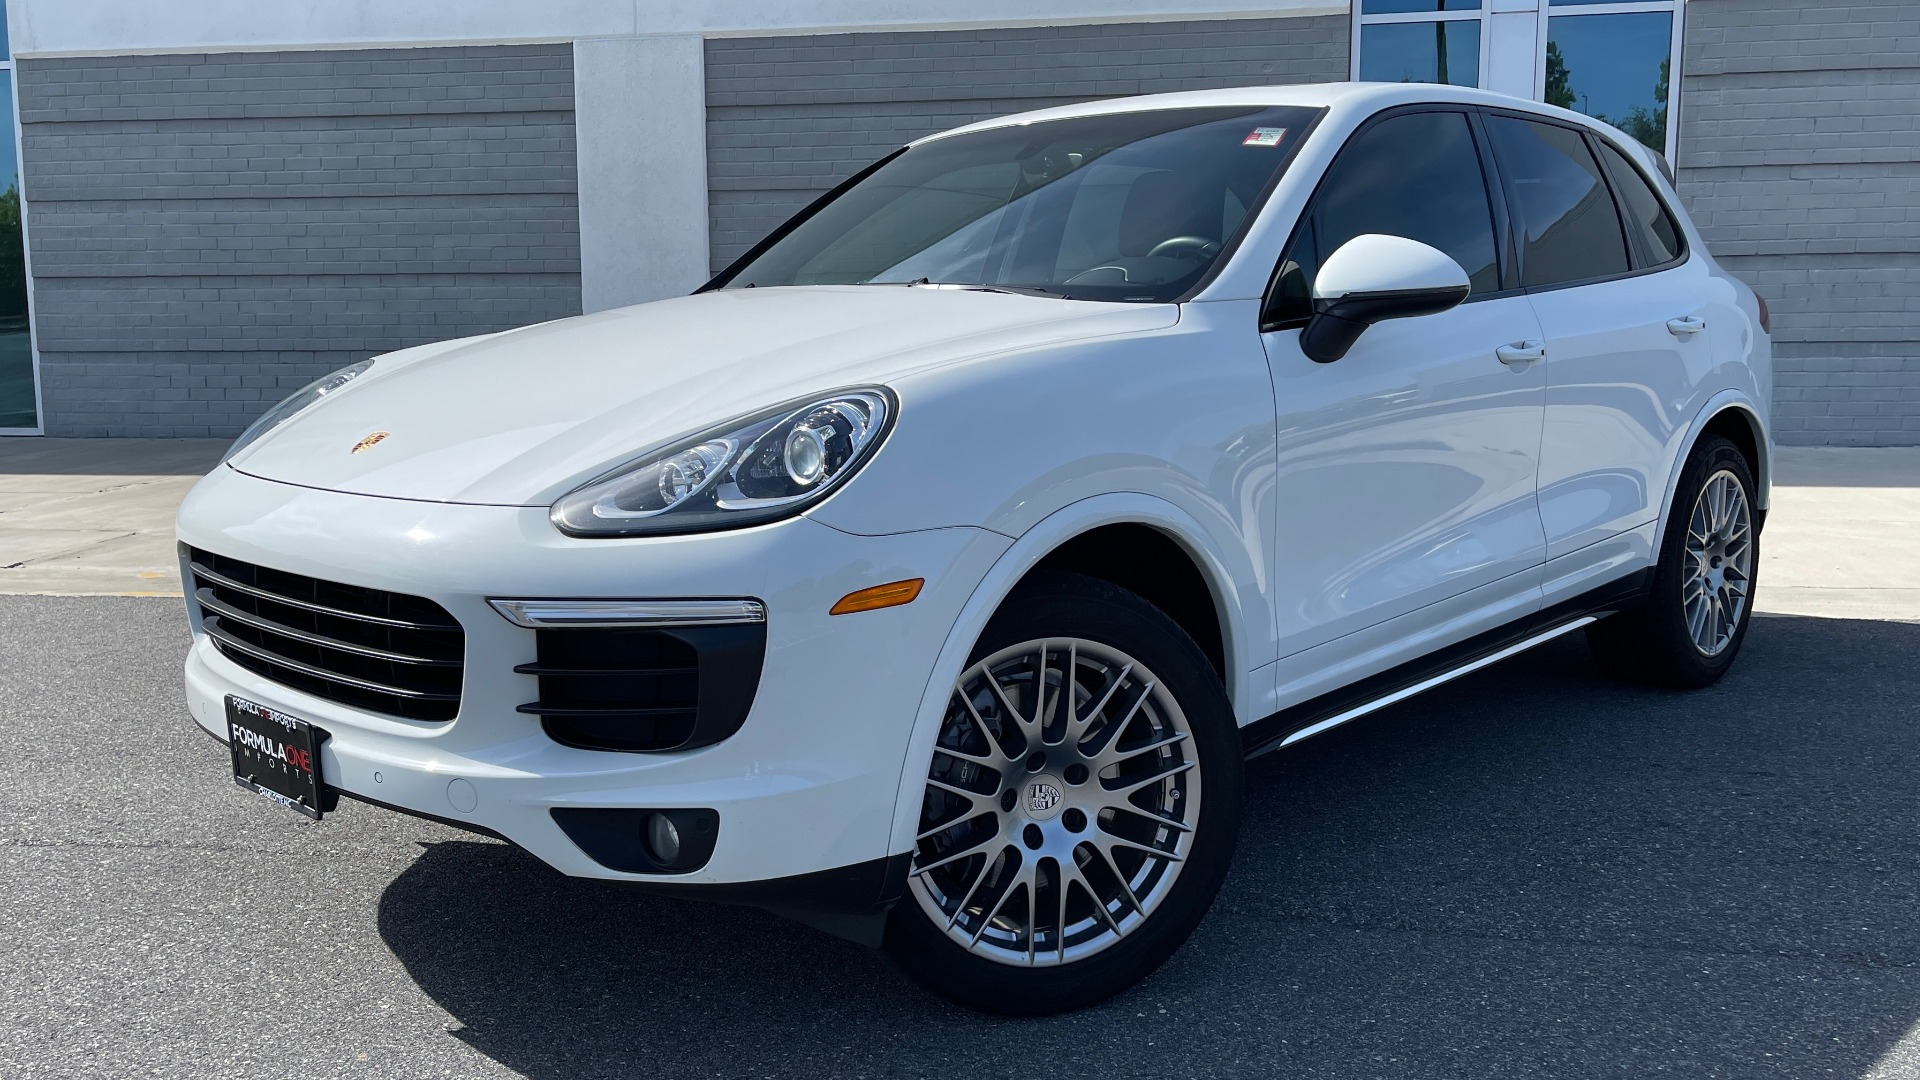 Used 2016 Porsche CAYENNE AWD / 3.6L TURBO / PREMIUM / BOSE / PANO-ROOF / NAV / LCA for sale $32,995 at Formula Imports in Charlotte NC 28227 1